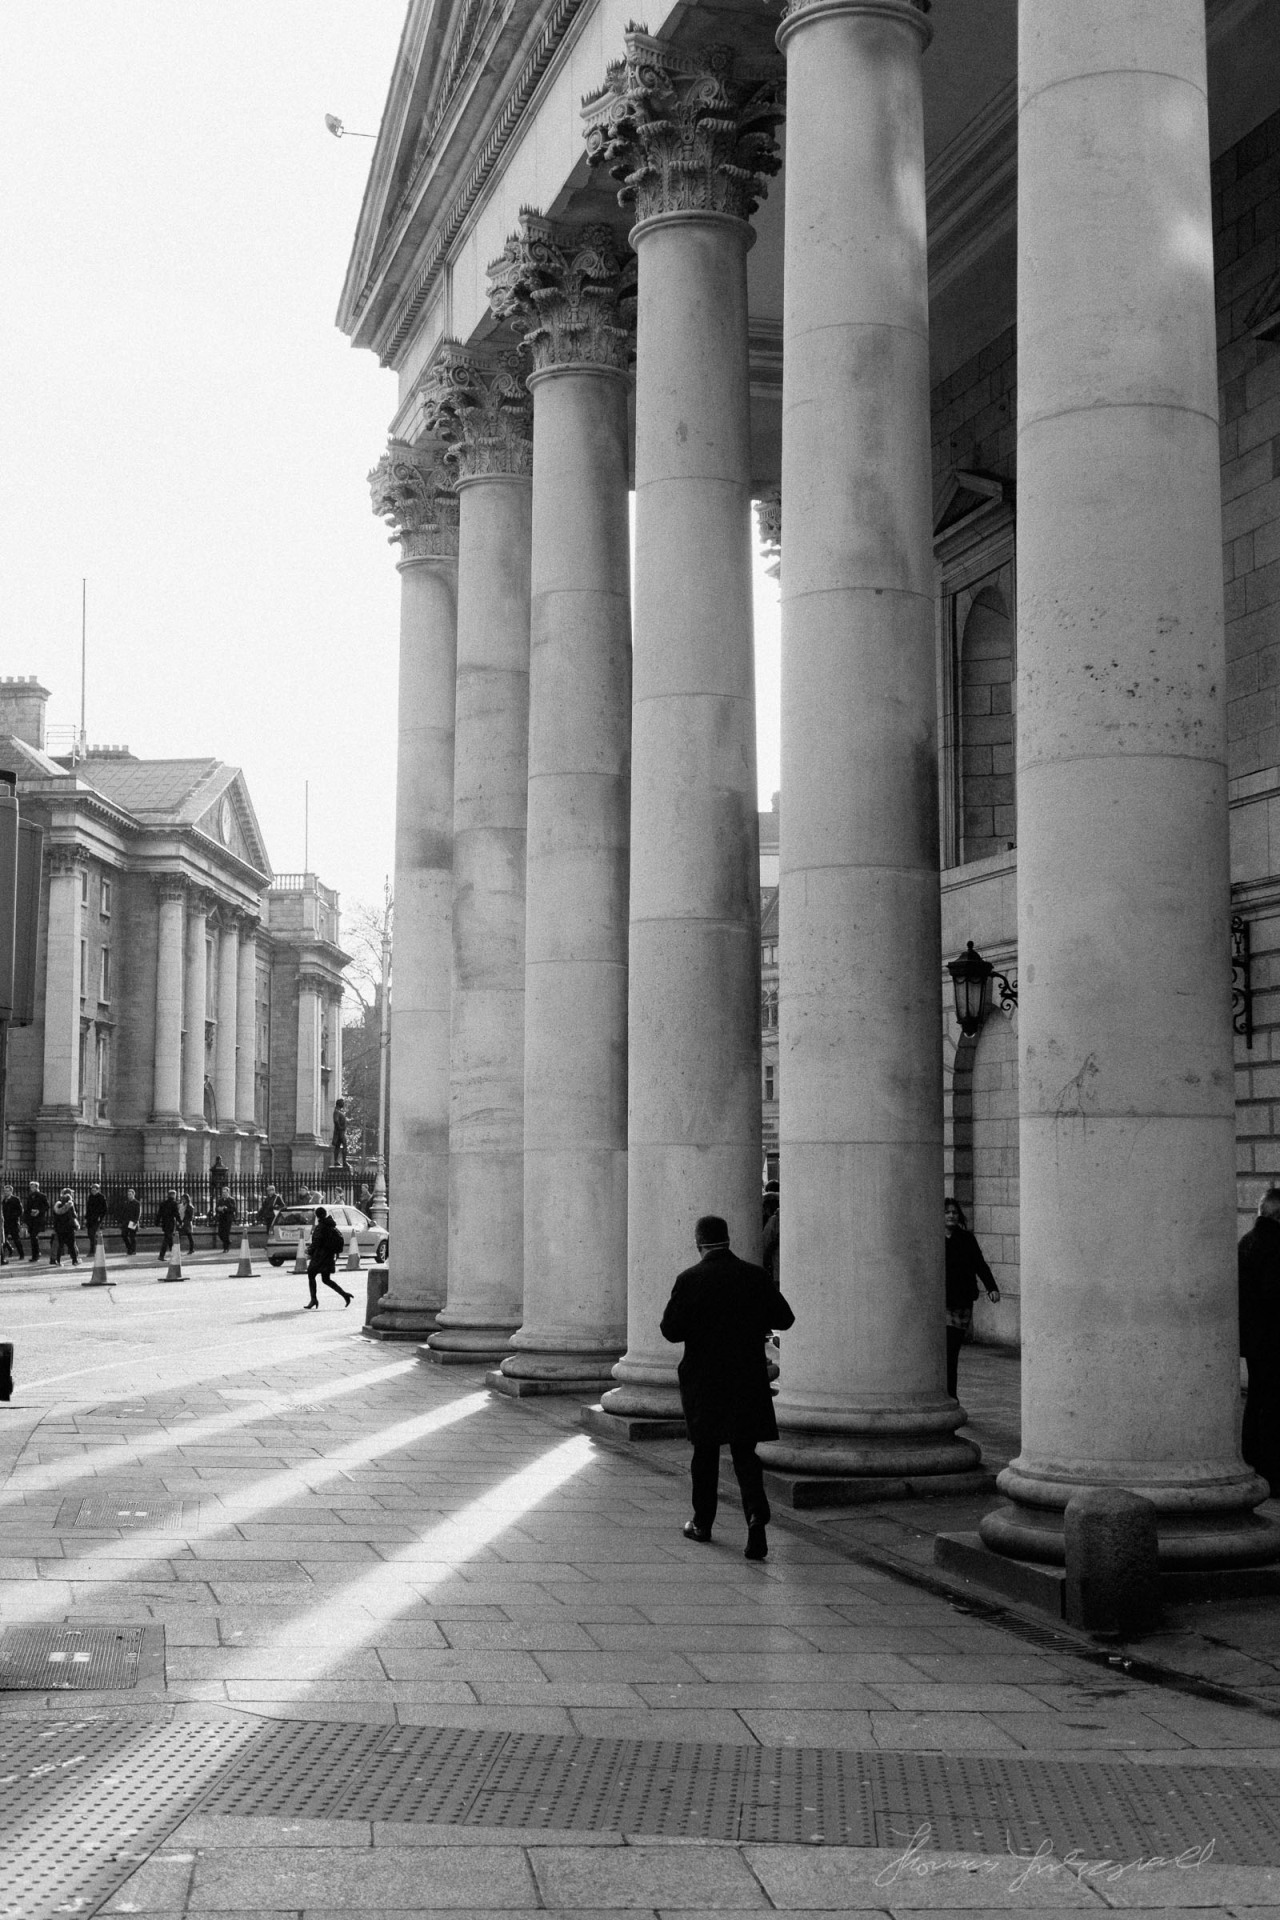 Dublin B&W: Columns and shadows by the Bank of Ireland